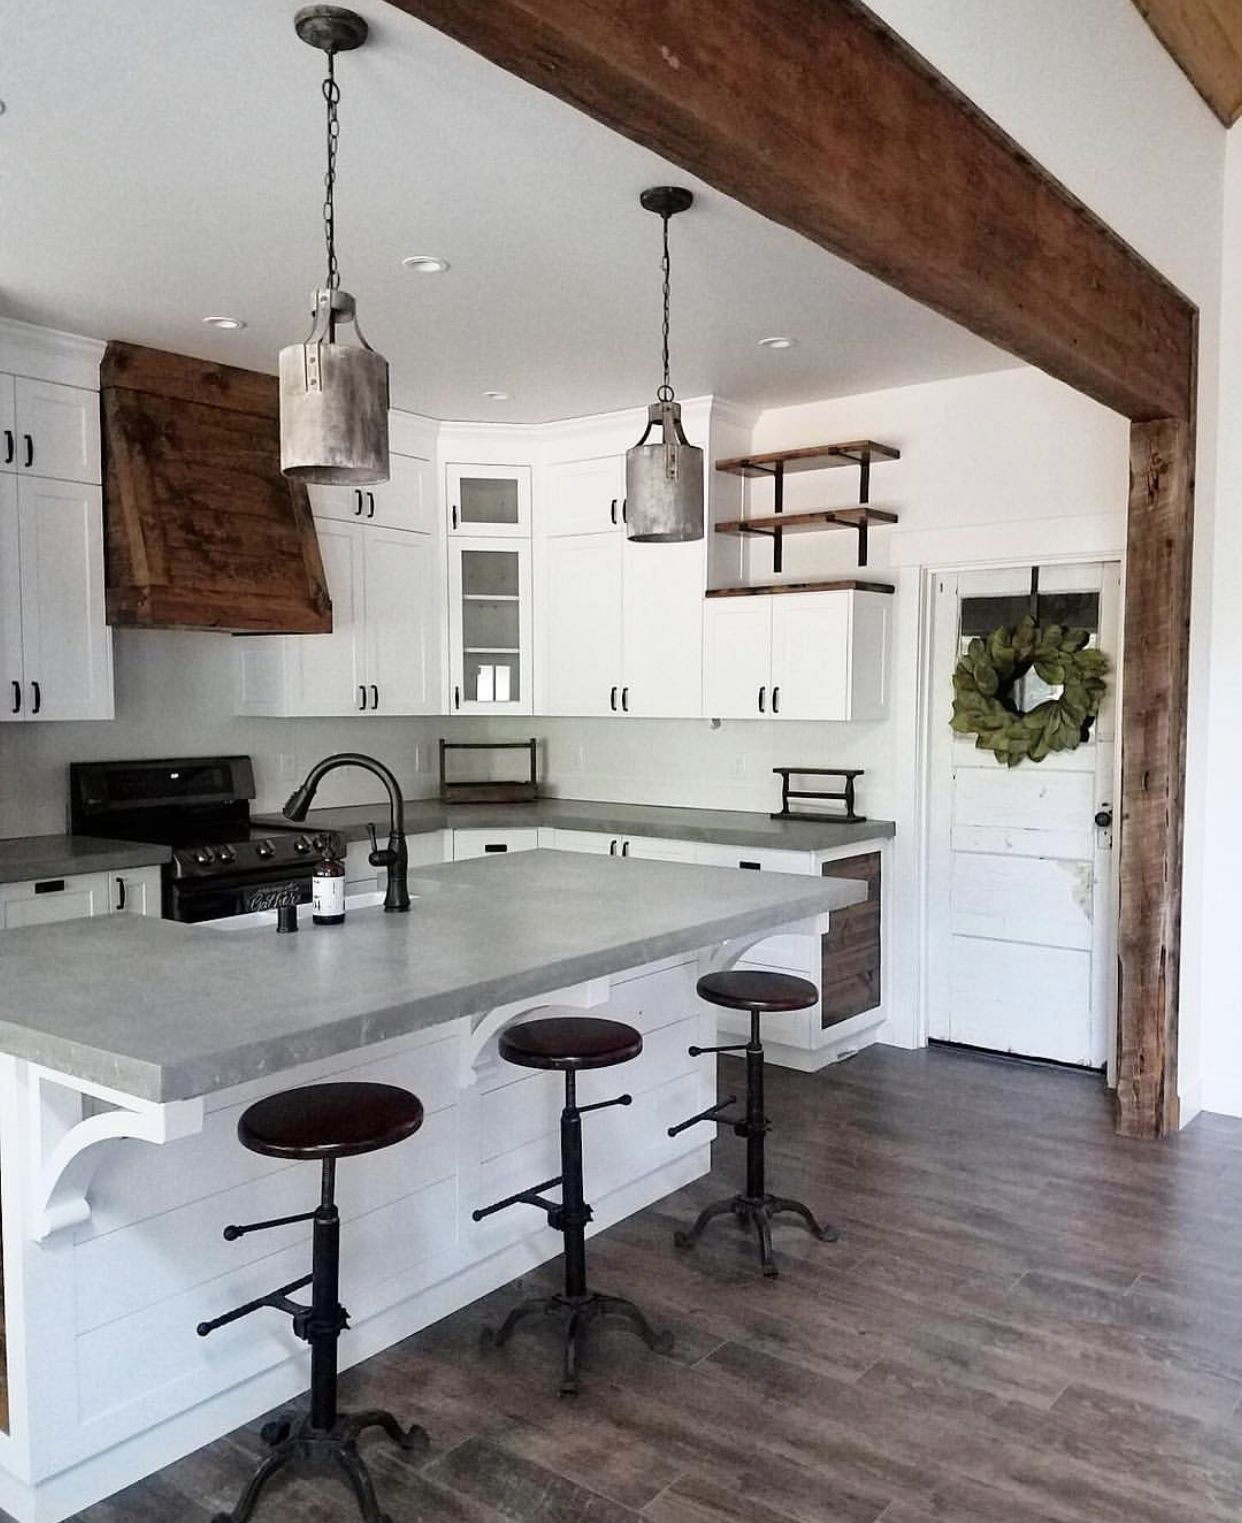 Like The Wooden Beam And Mixed Materials.